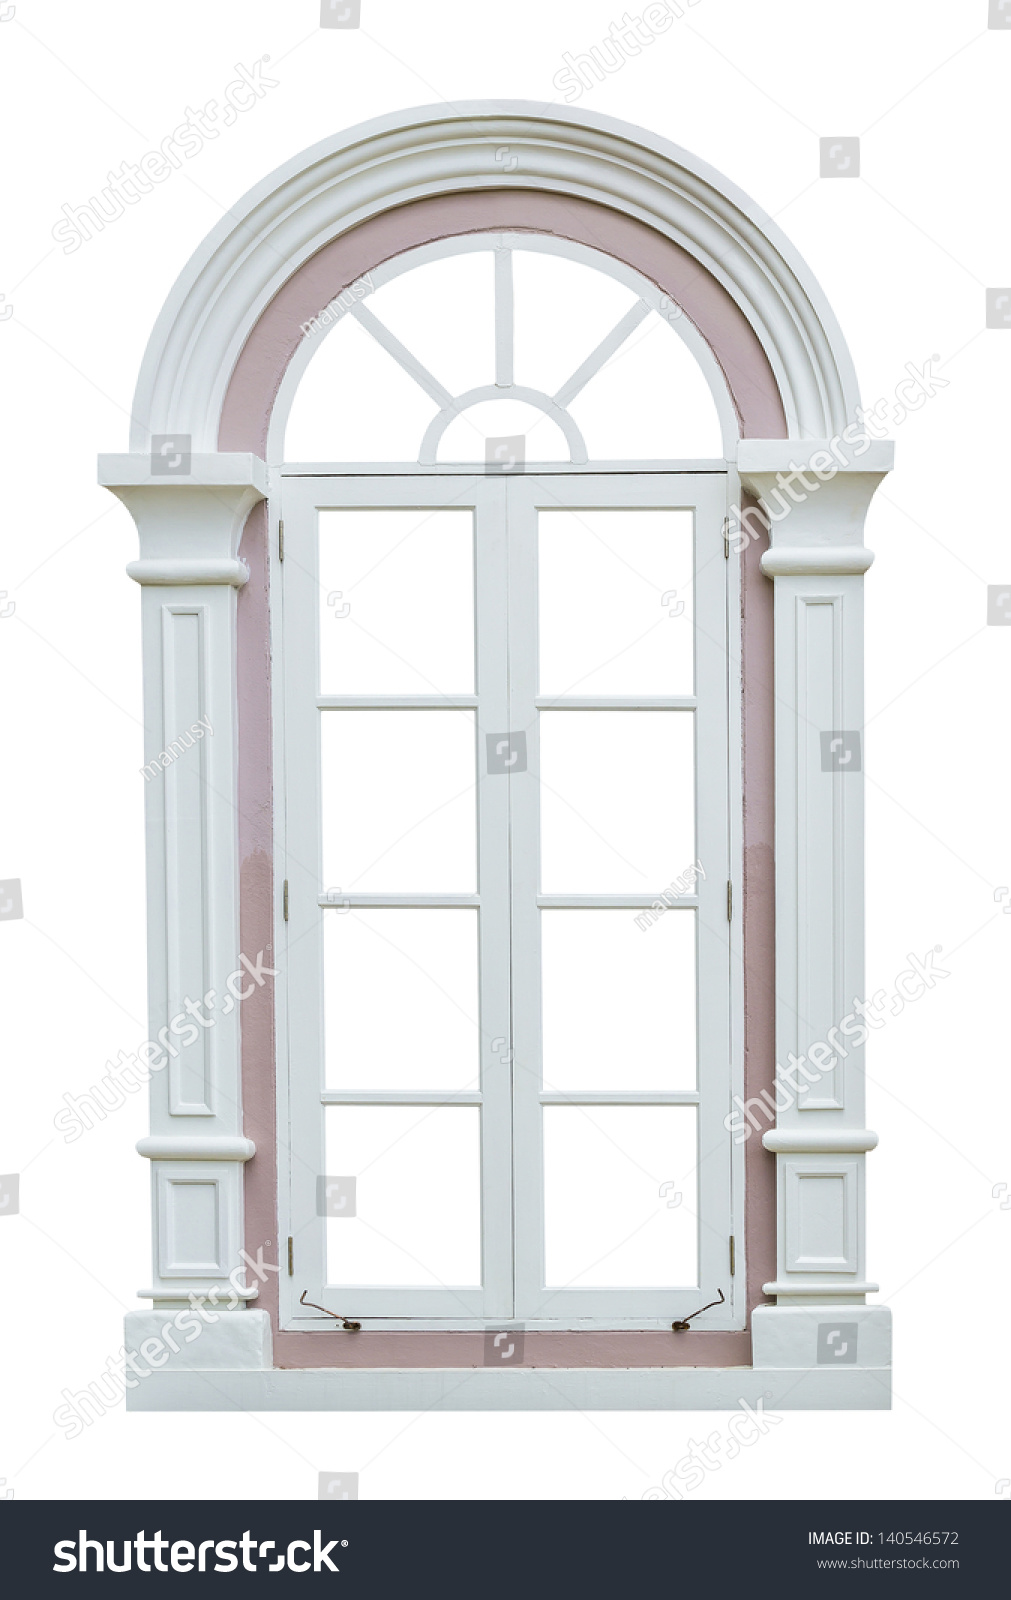 White window frame - Classic Window Frame Isolated On White Background